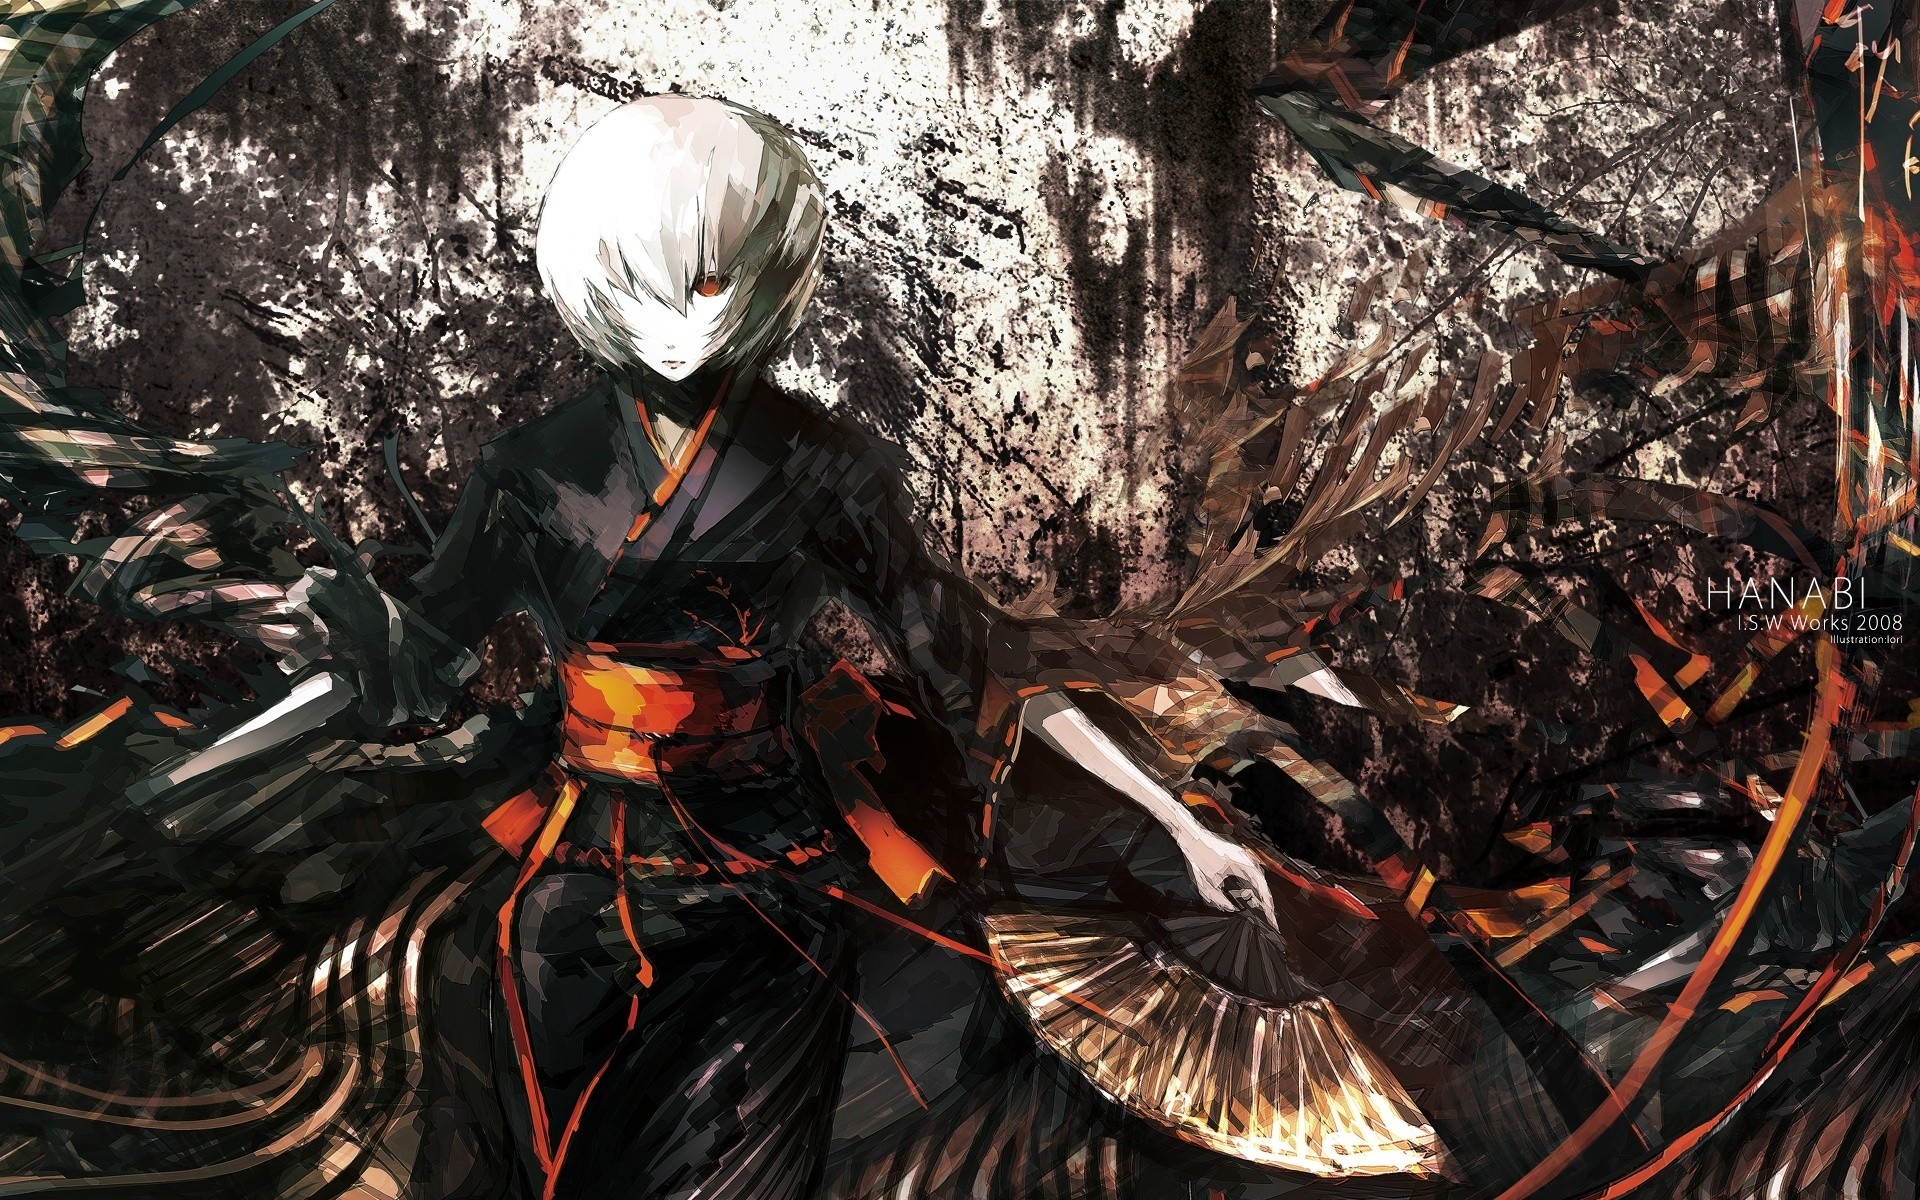 oboi wallpapers anime 7745 the best anime wallpapers hd 5 33 oboi html .